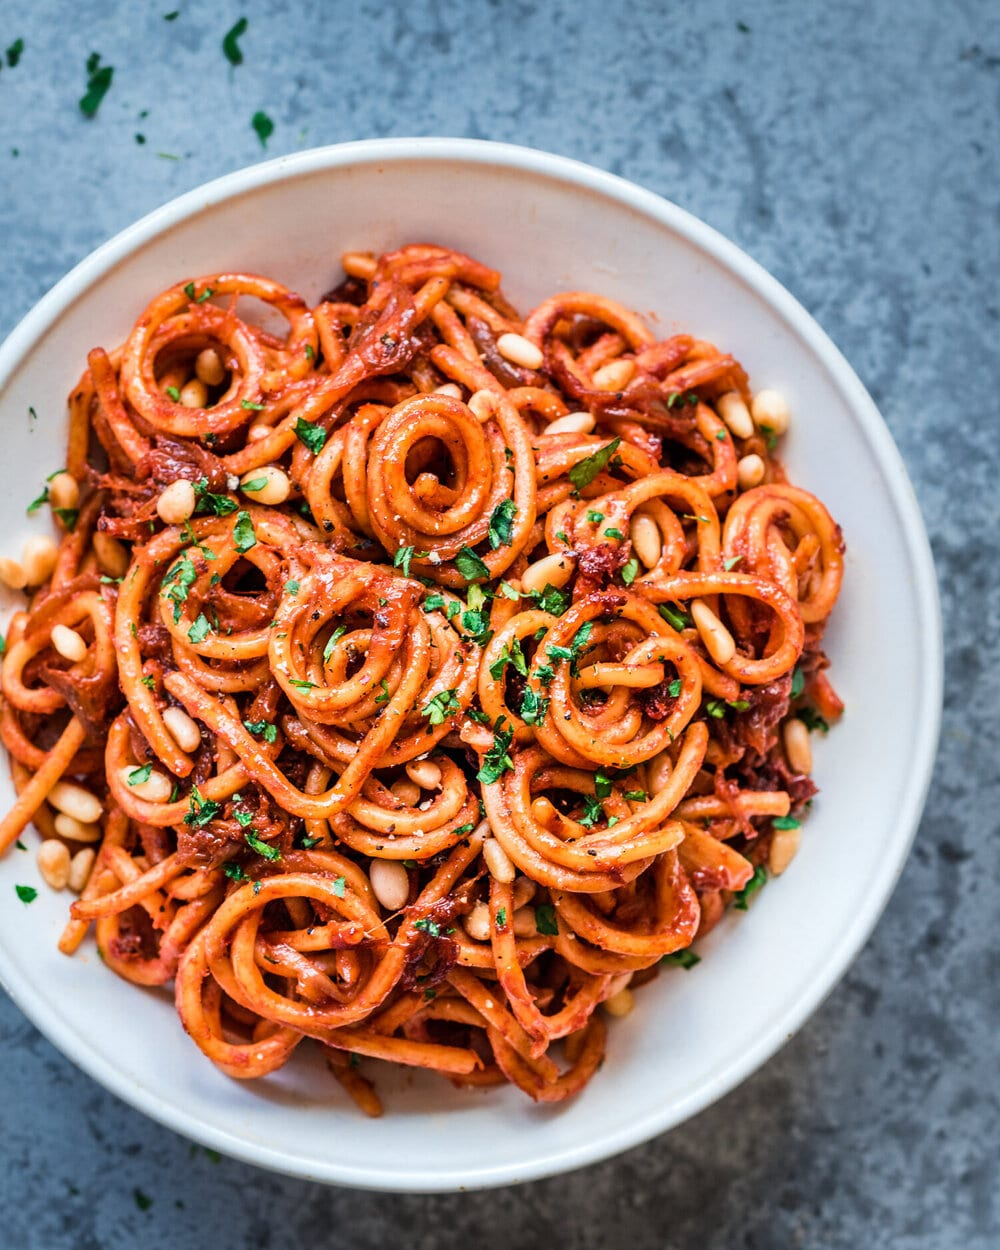 10 easy vegan pasta recipes. caramelized onion pasta. pasta food photography.